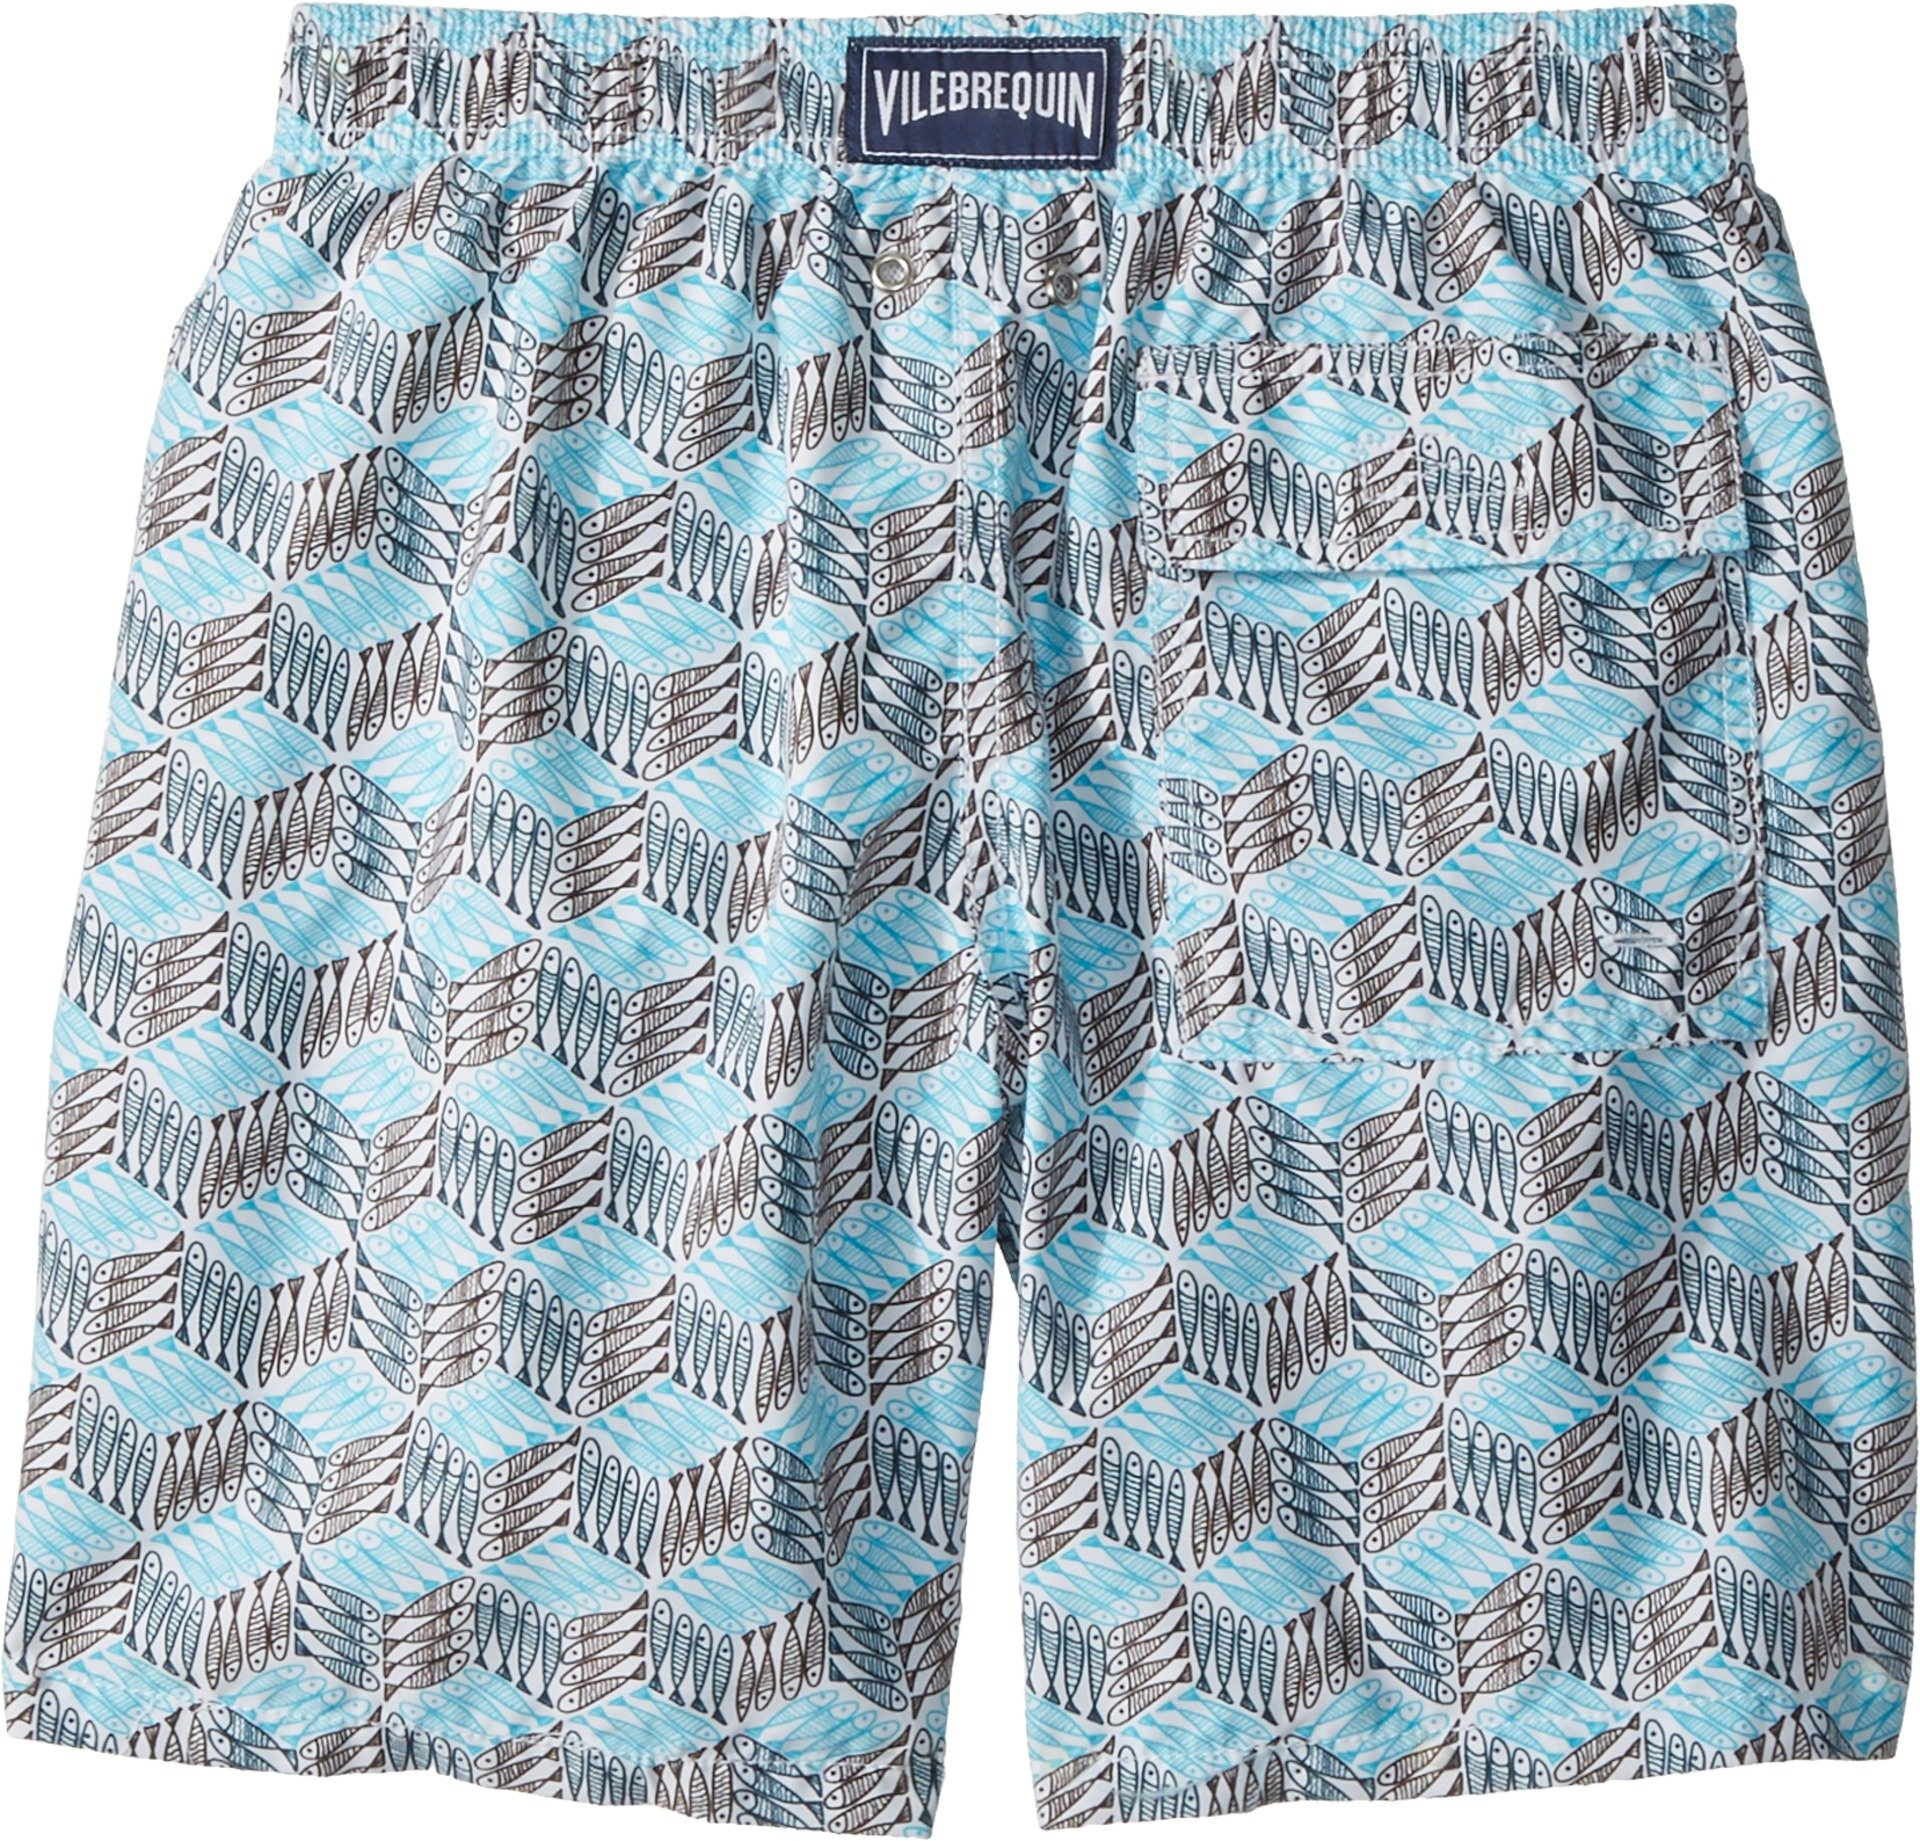 Vilebrequin Kids Boy's Fishes Cube Swim Trunk (Big Kids) Grey/Blue 10 Years by Vilebrequin Kids (Image #2)